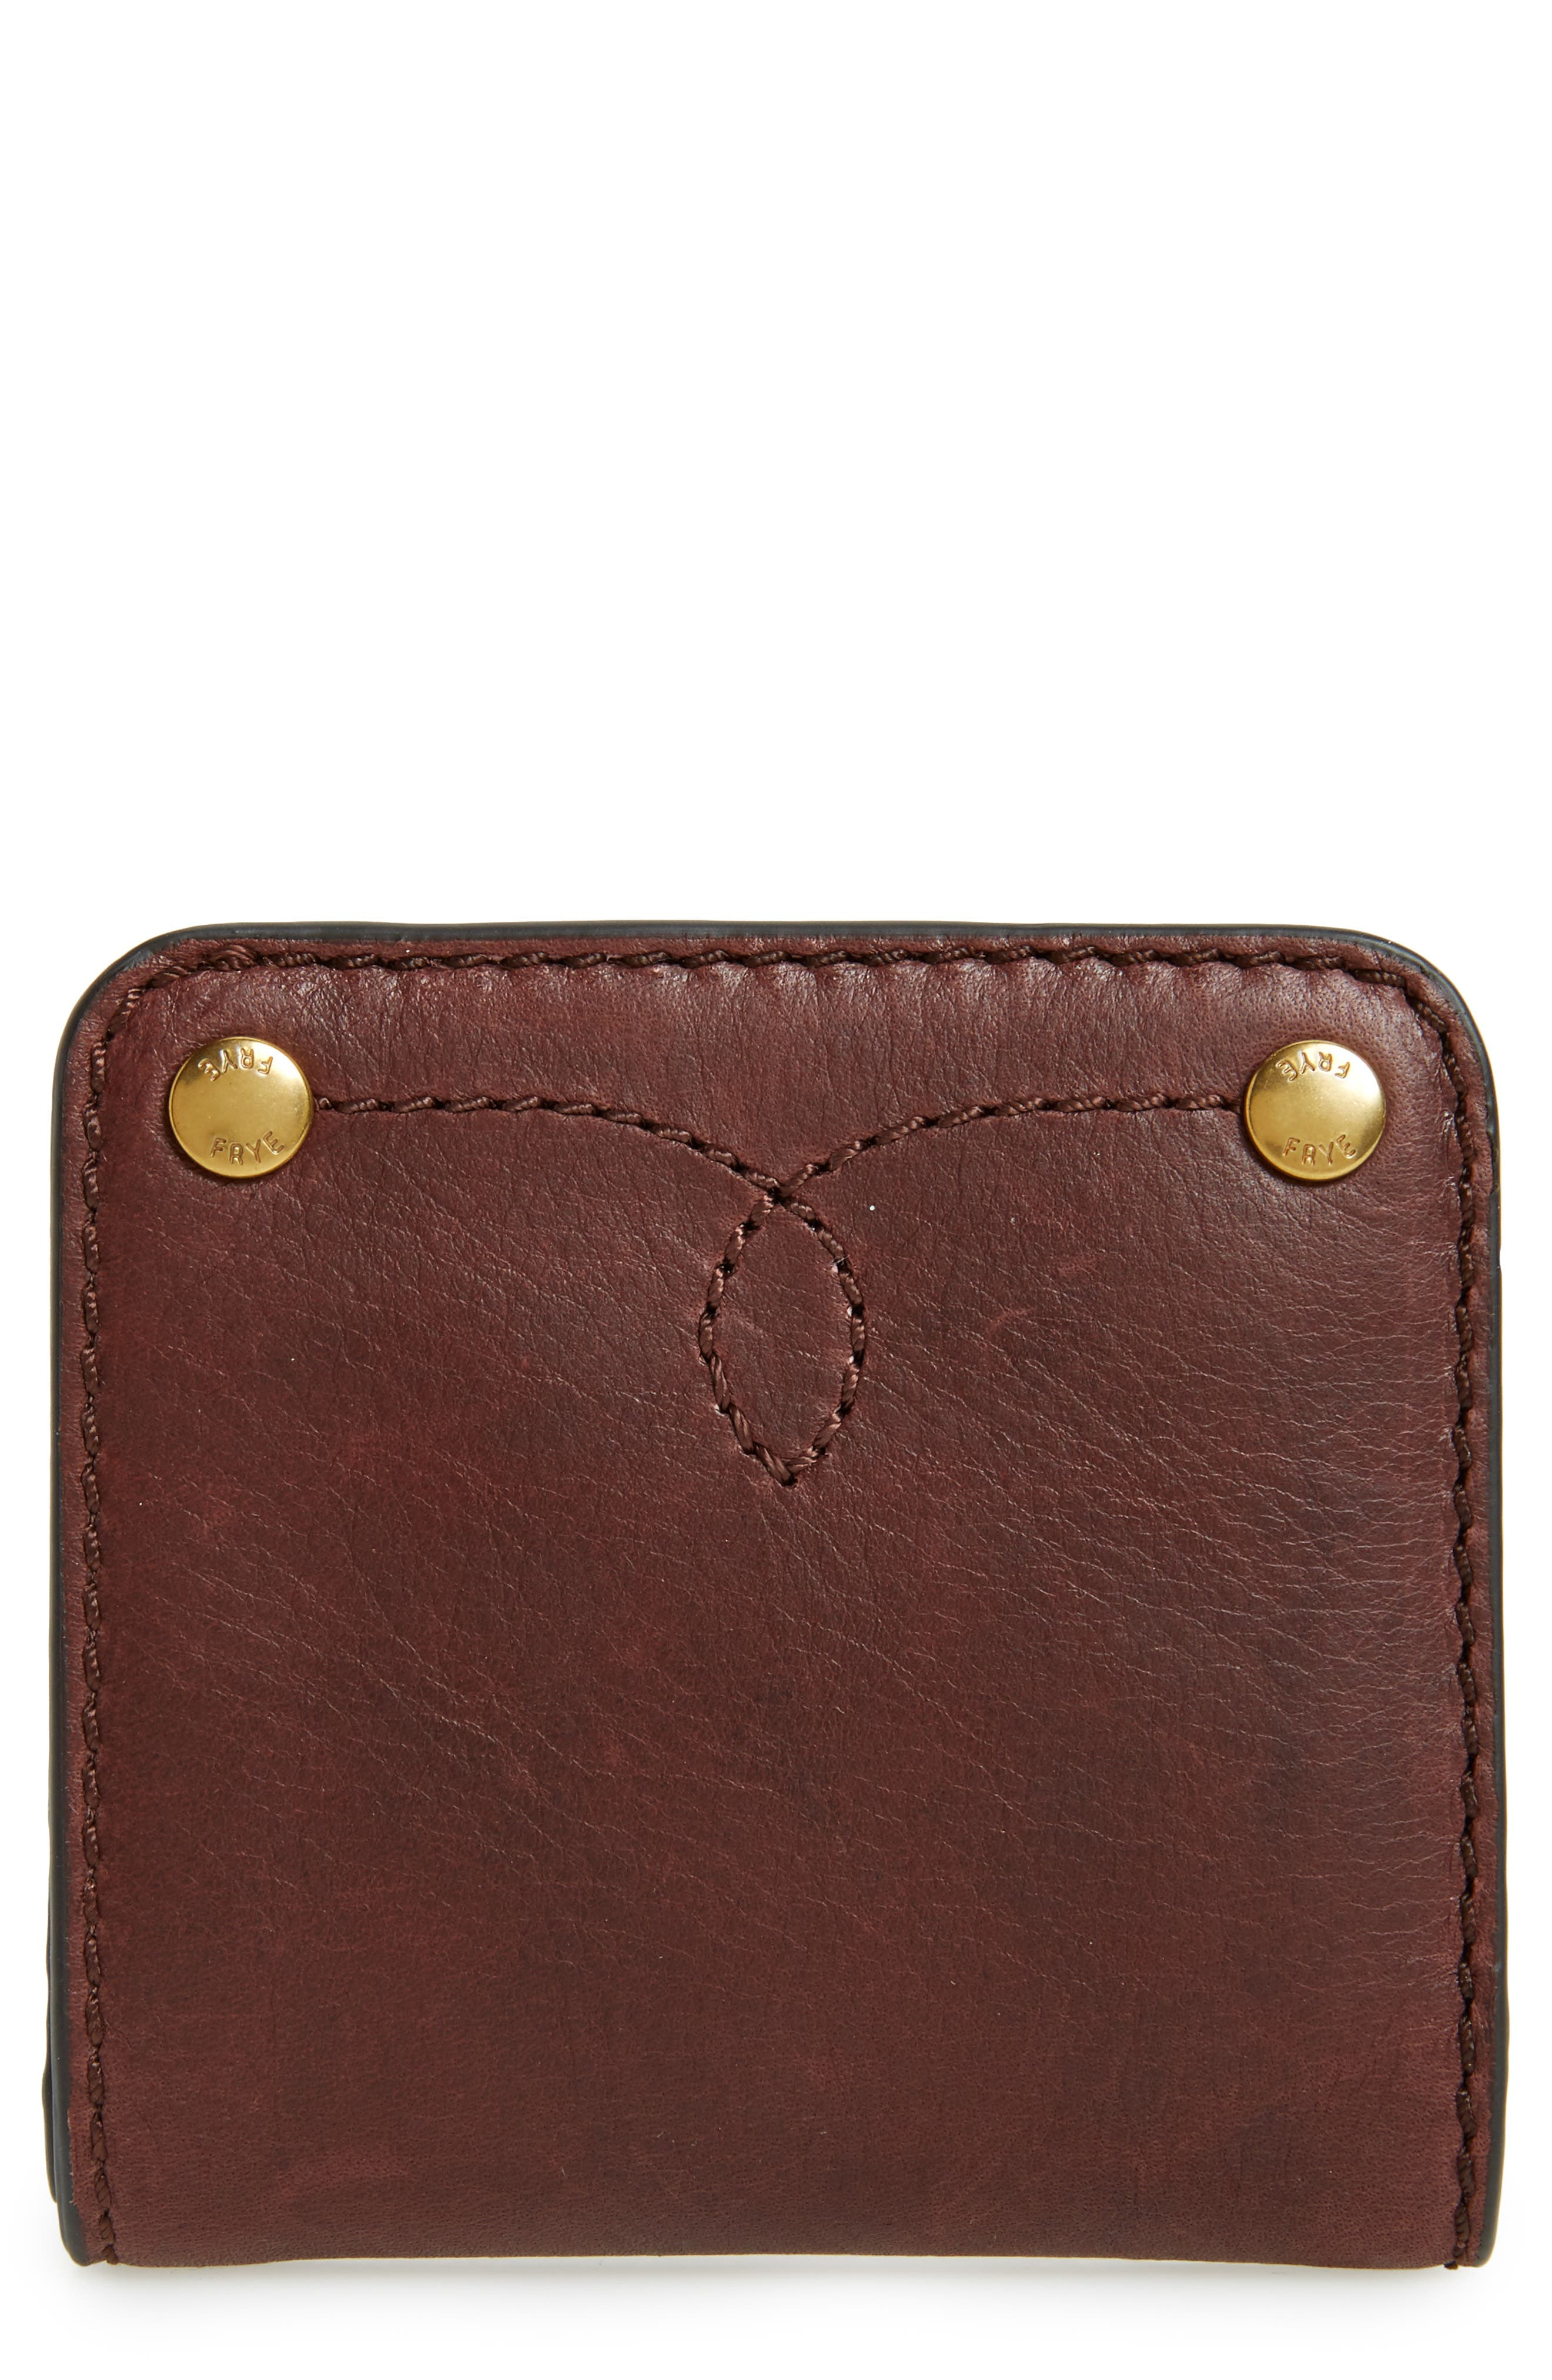 Small Campus Rivet Leather Wallet,                         Main,                         color, 210